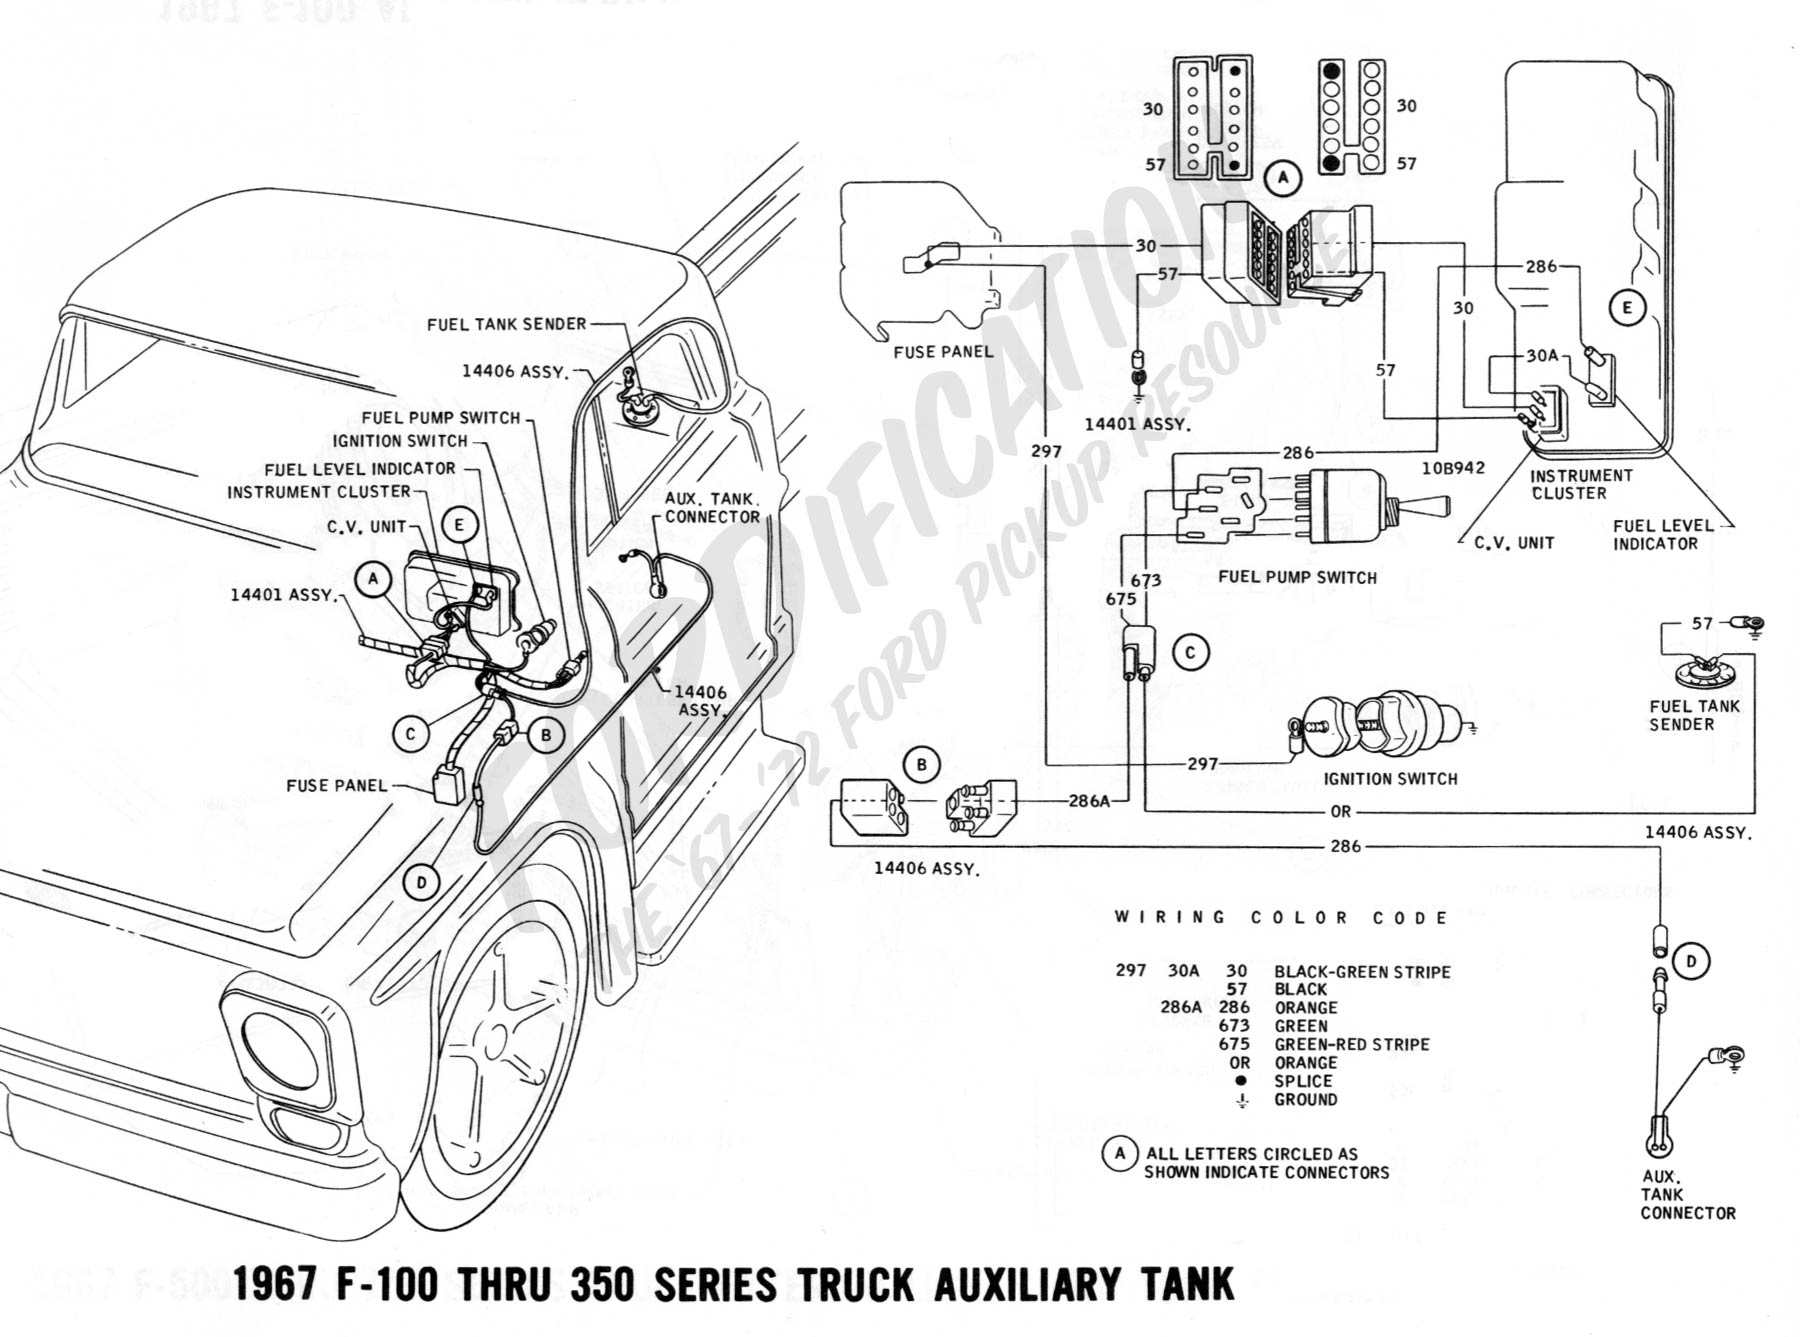 hight resolution of 1976 mustang wiring diagram electrical diagram schematics rh landingchurchseattle com jeep cj5 wiring diagram pdf jeep